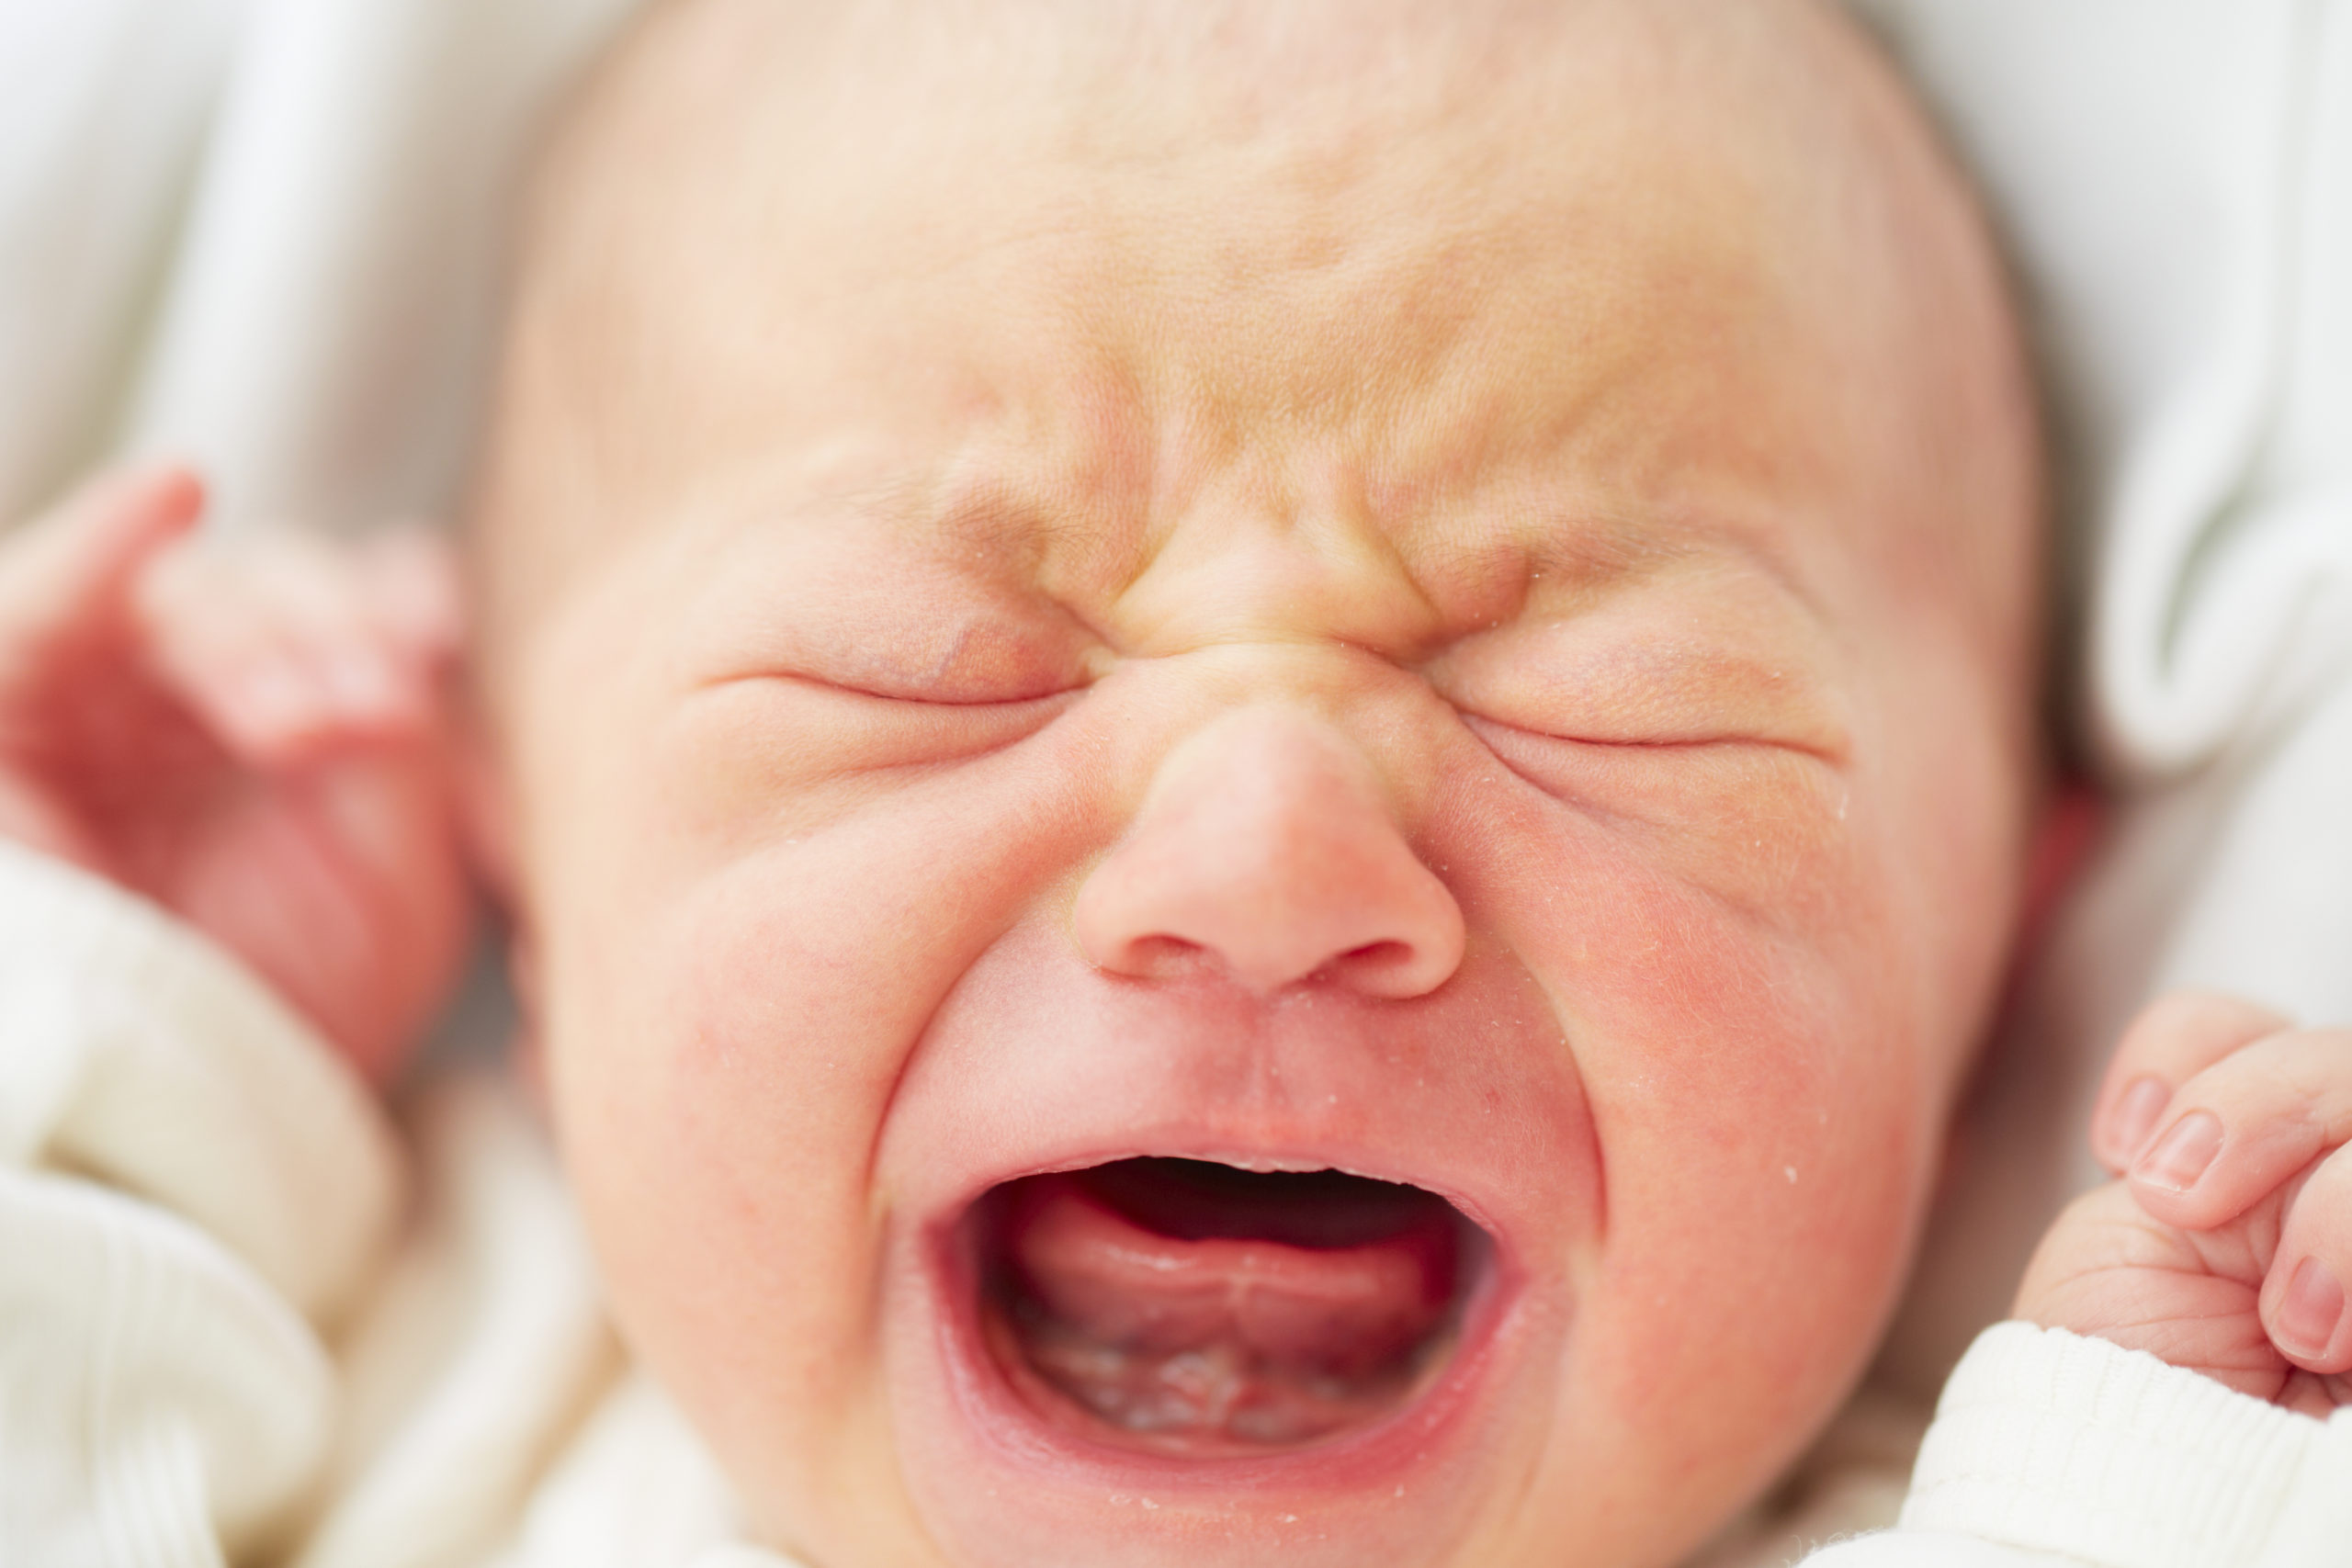 How to know if your baby has a Tongue-tie?